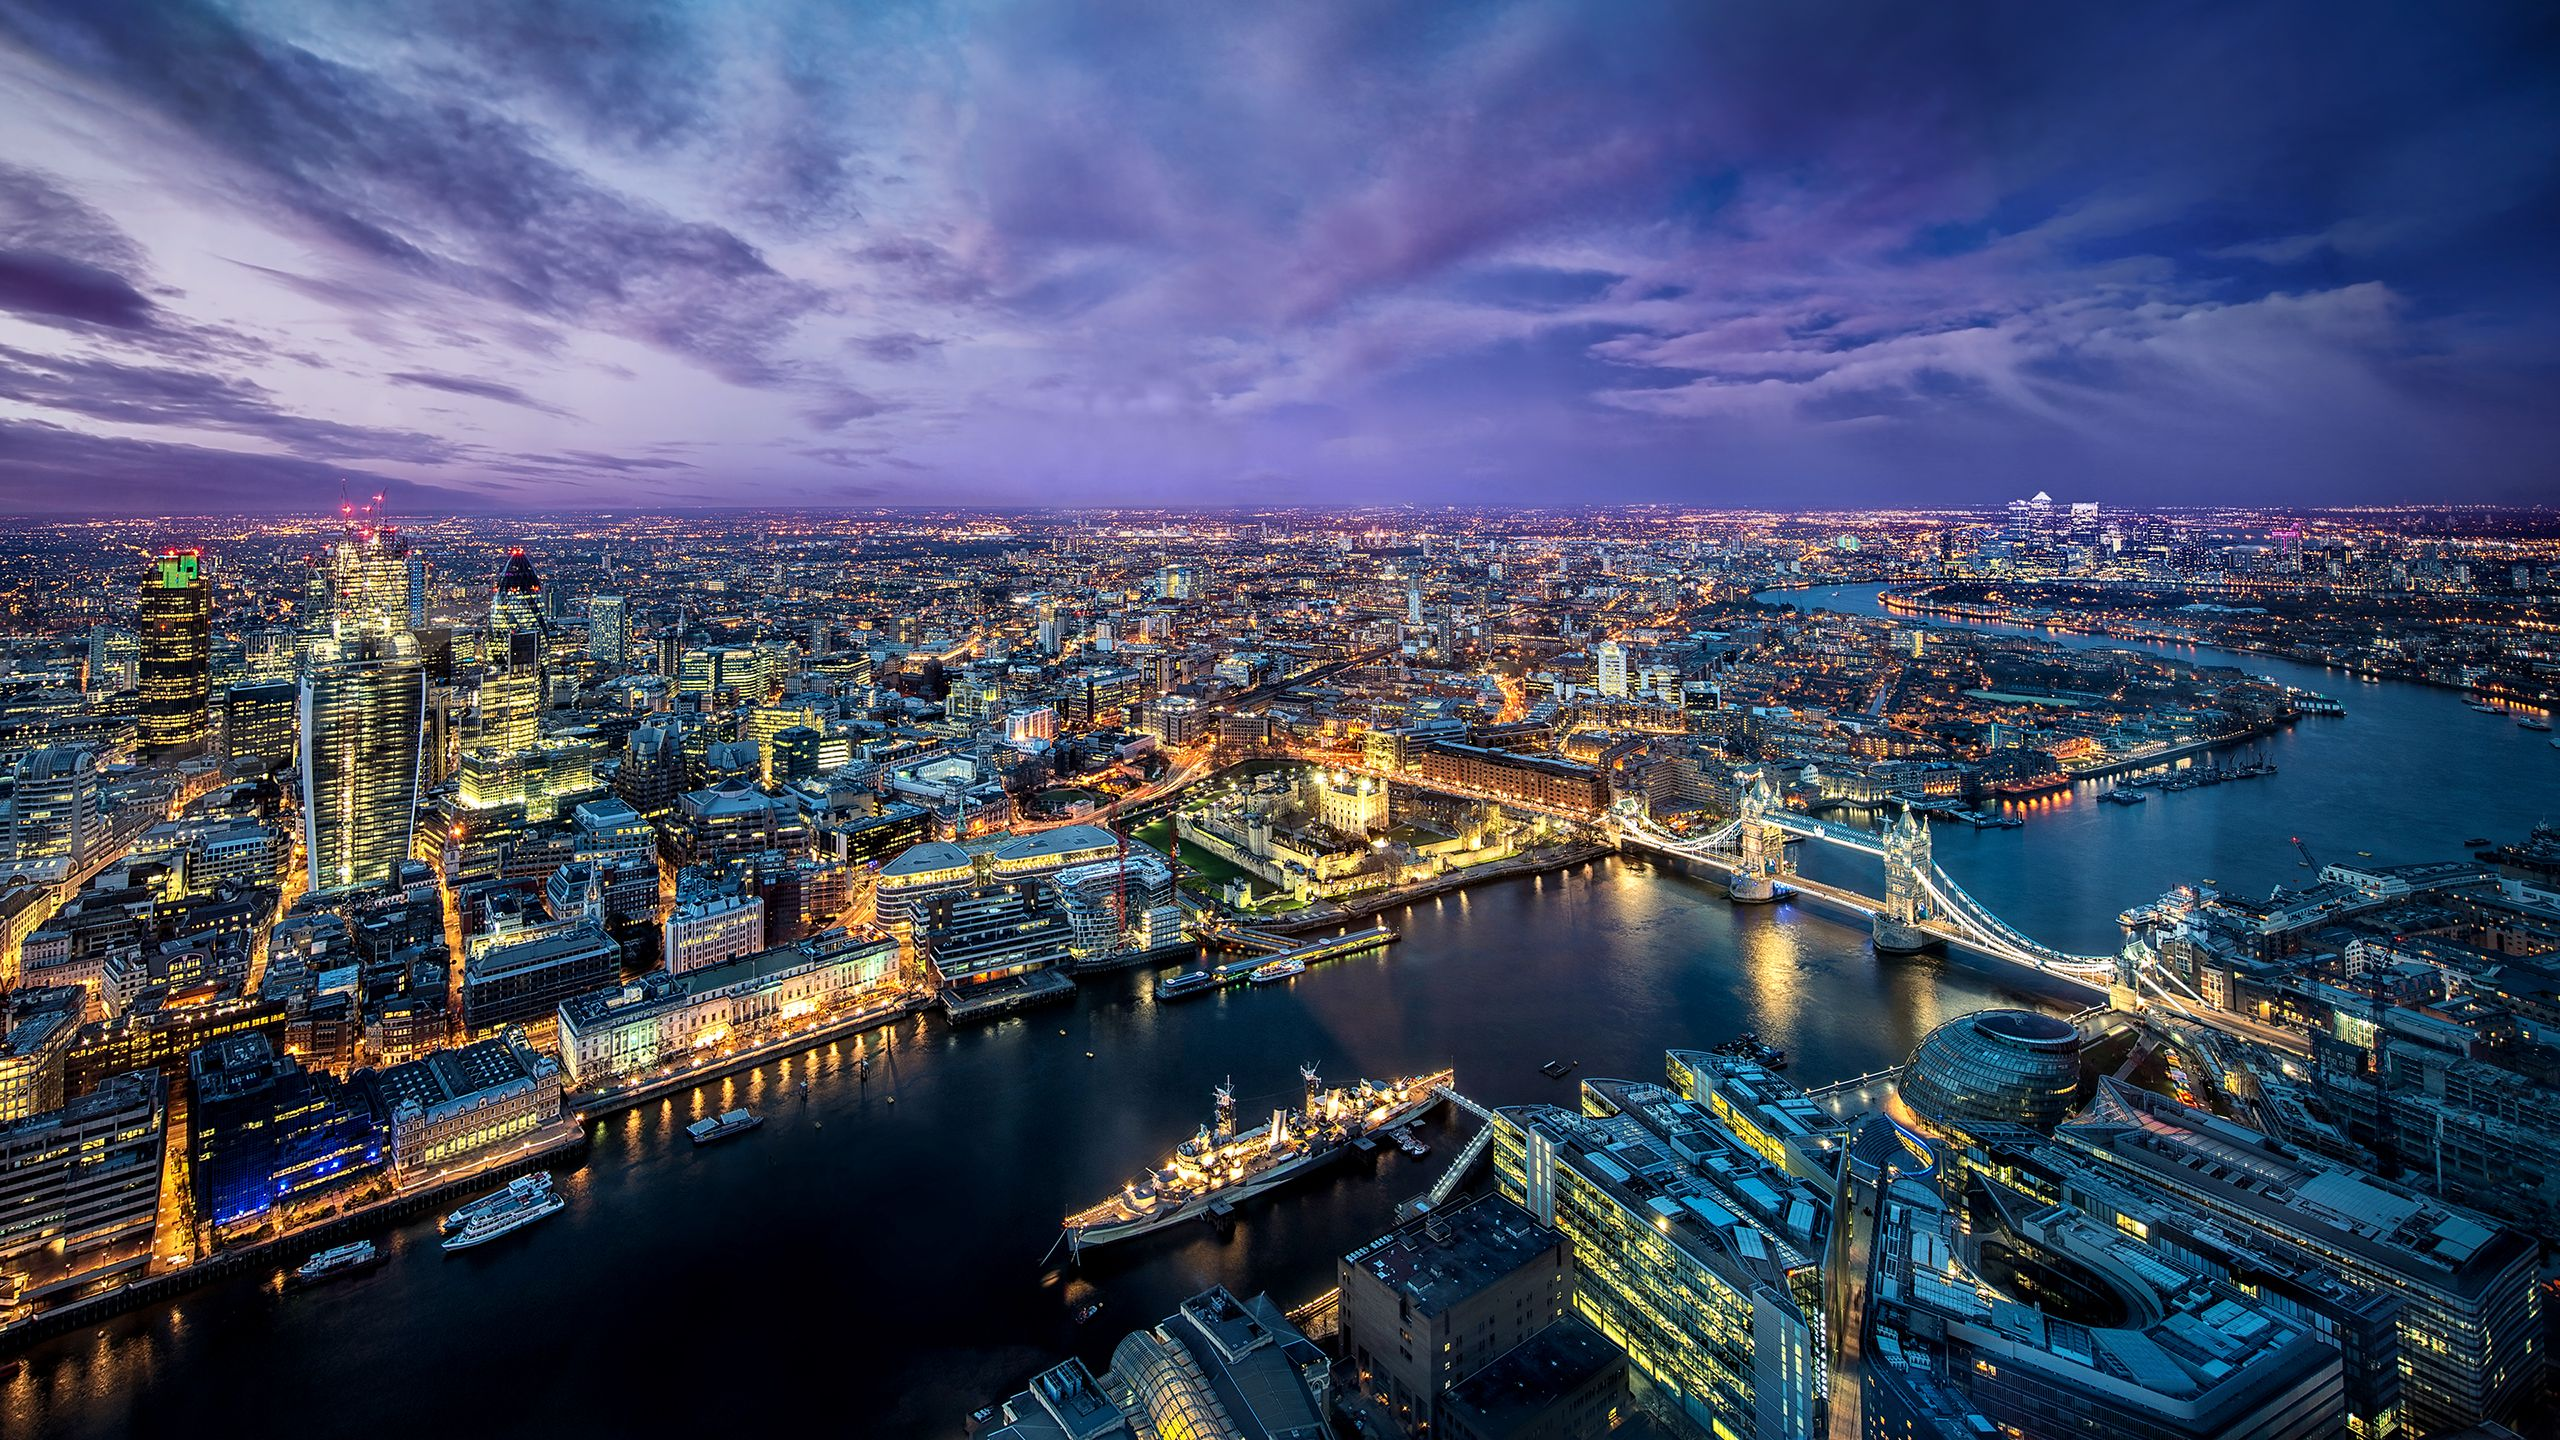 high resolution desktop wallpaper london from the shard by dominic kamp